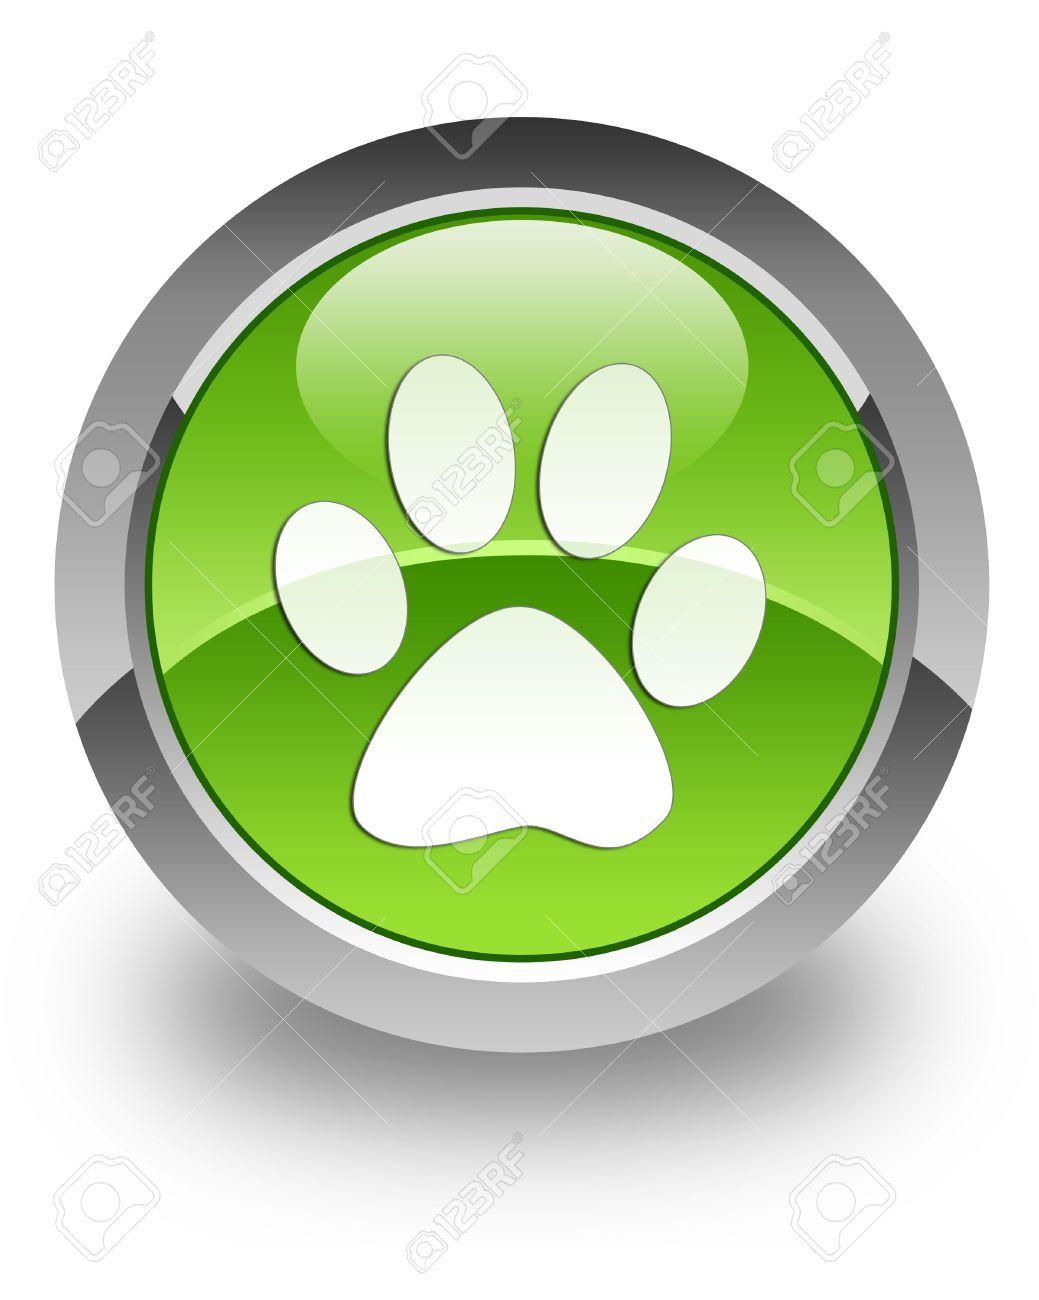 Animal footprint icon on glossy green round button Stock Photo - 13809768